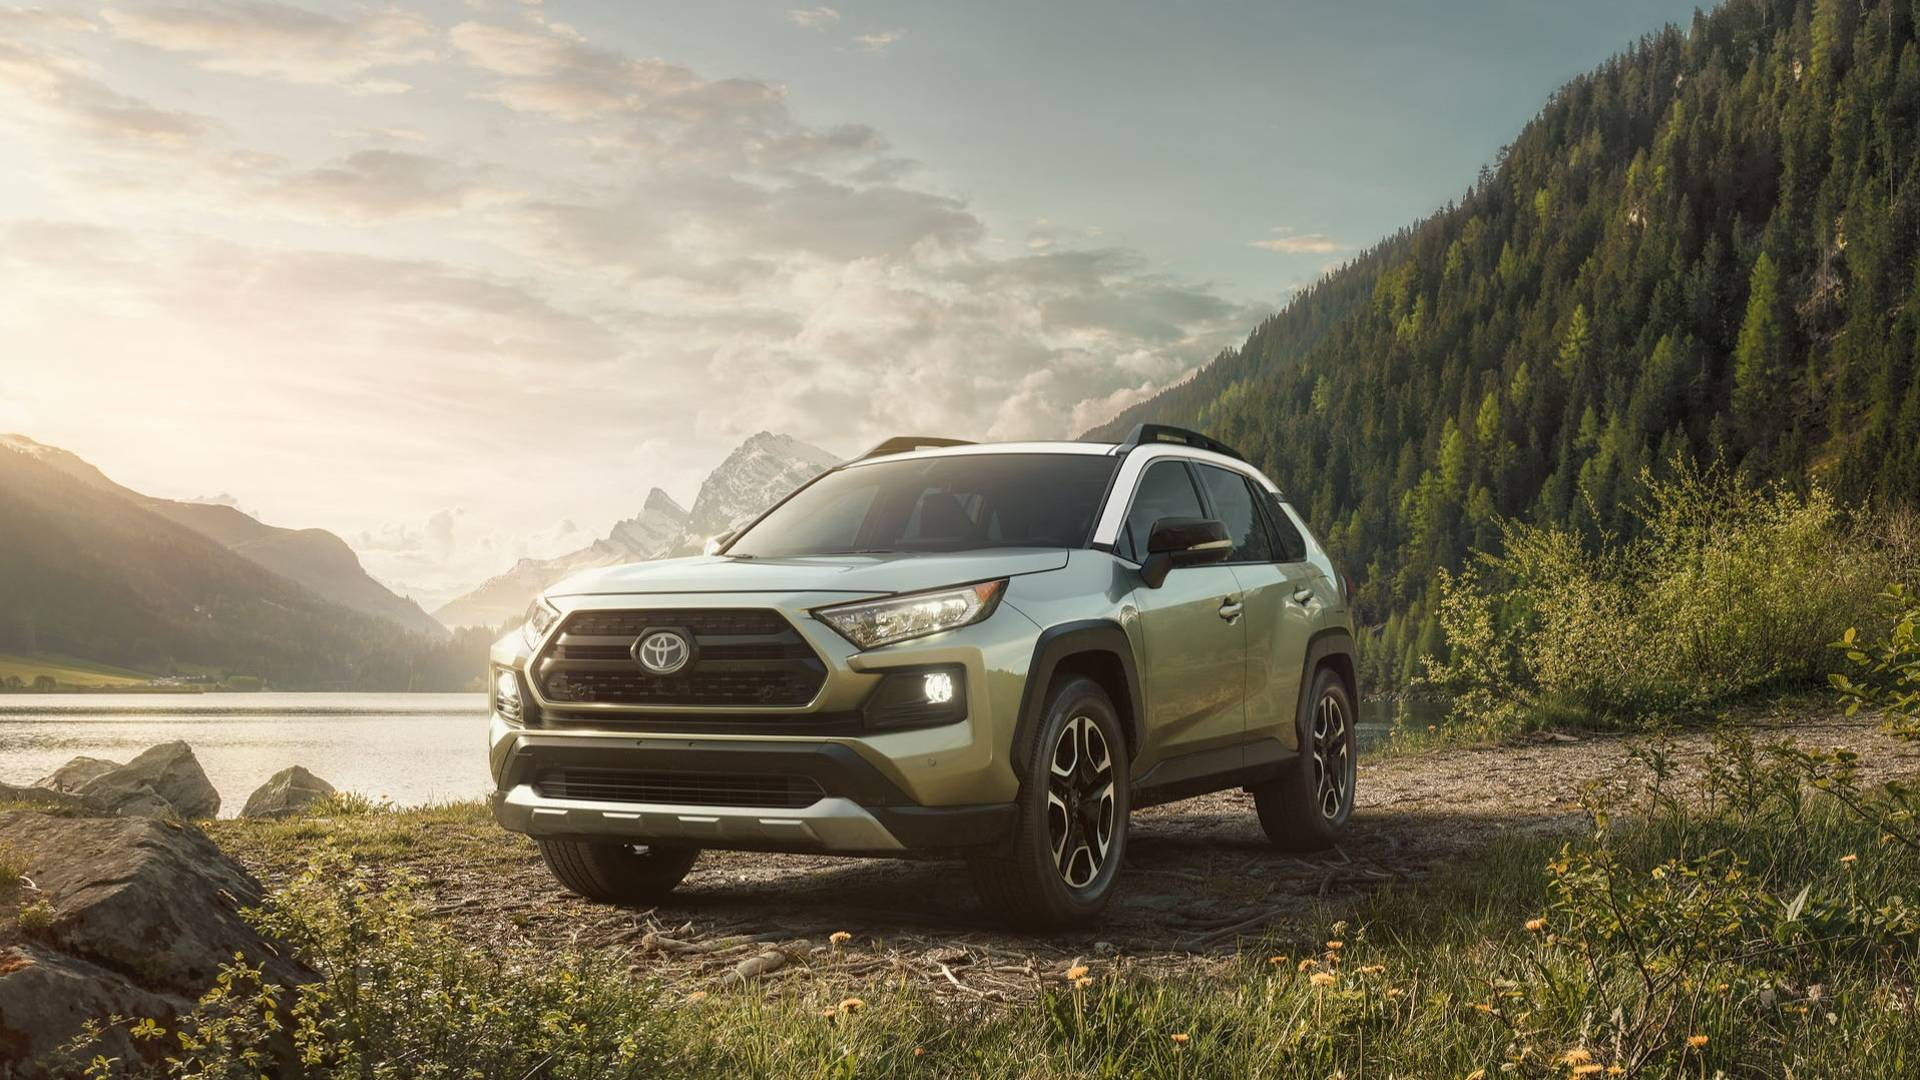 The All-New 2019 Toyota RAV4 Debuts at the 2018 New York International Auto Show 7